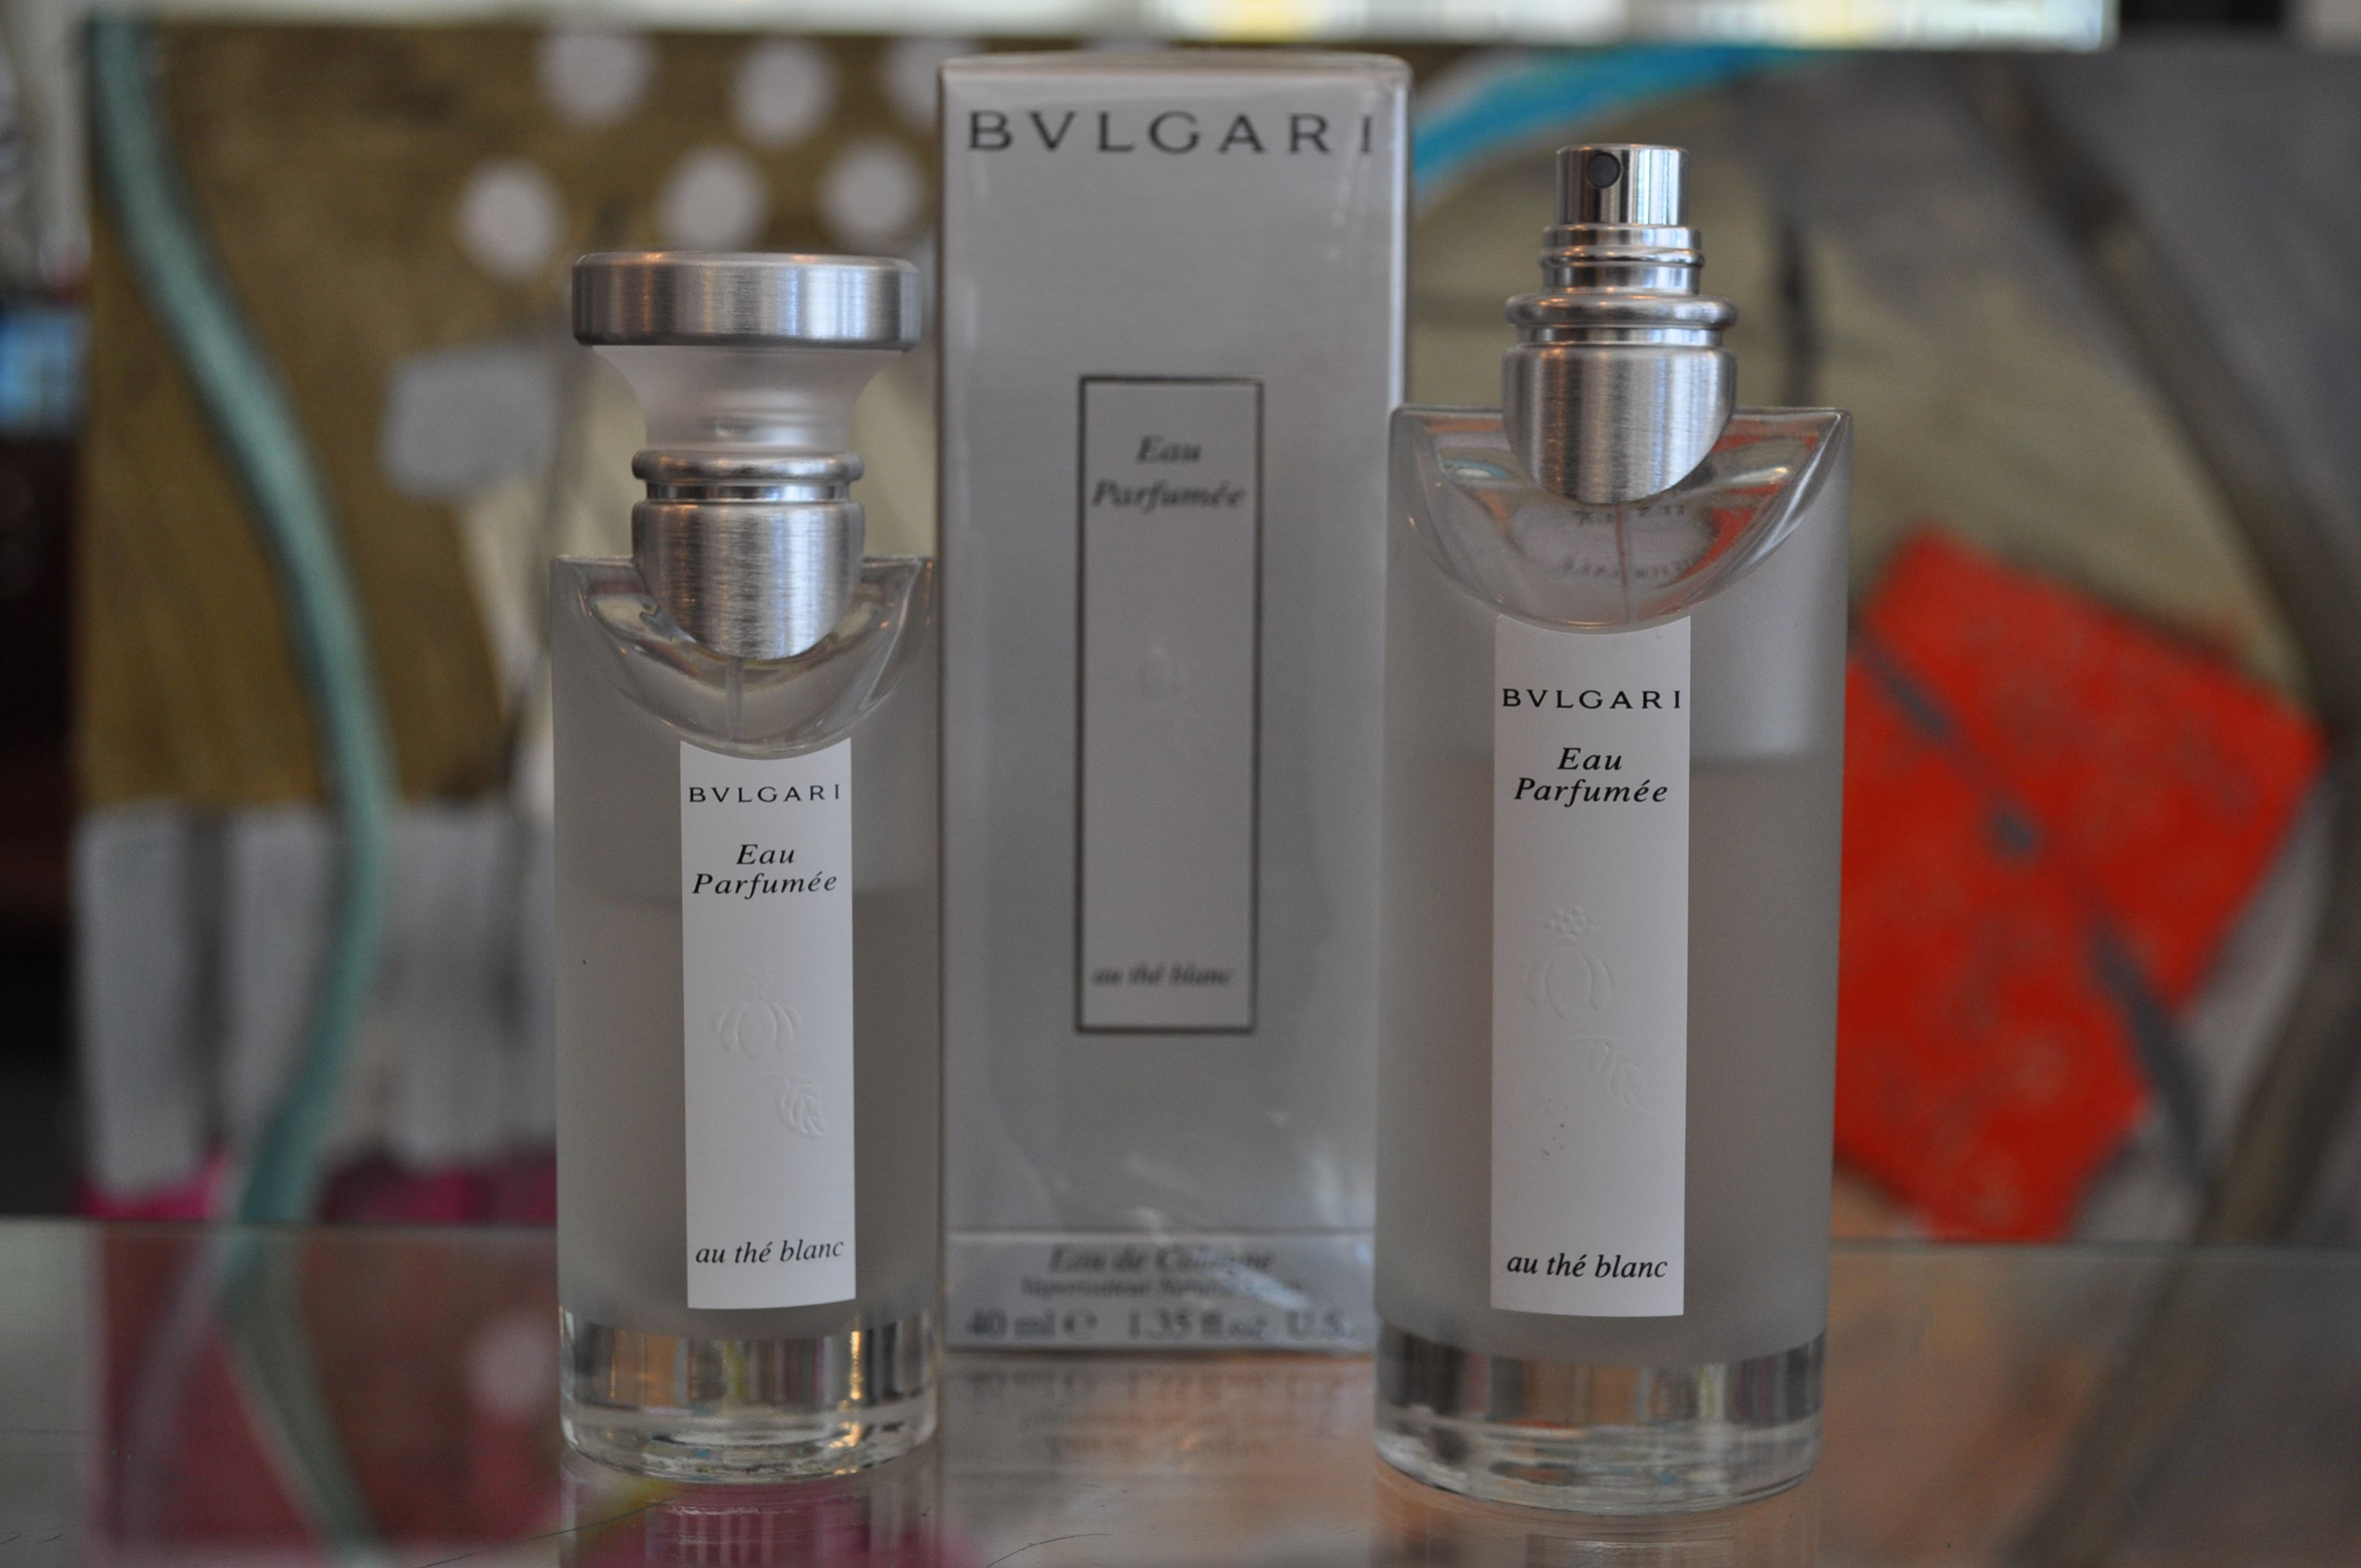 Bulgari au thé blanc perfume sold at jewel toffier call